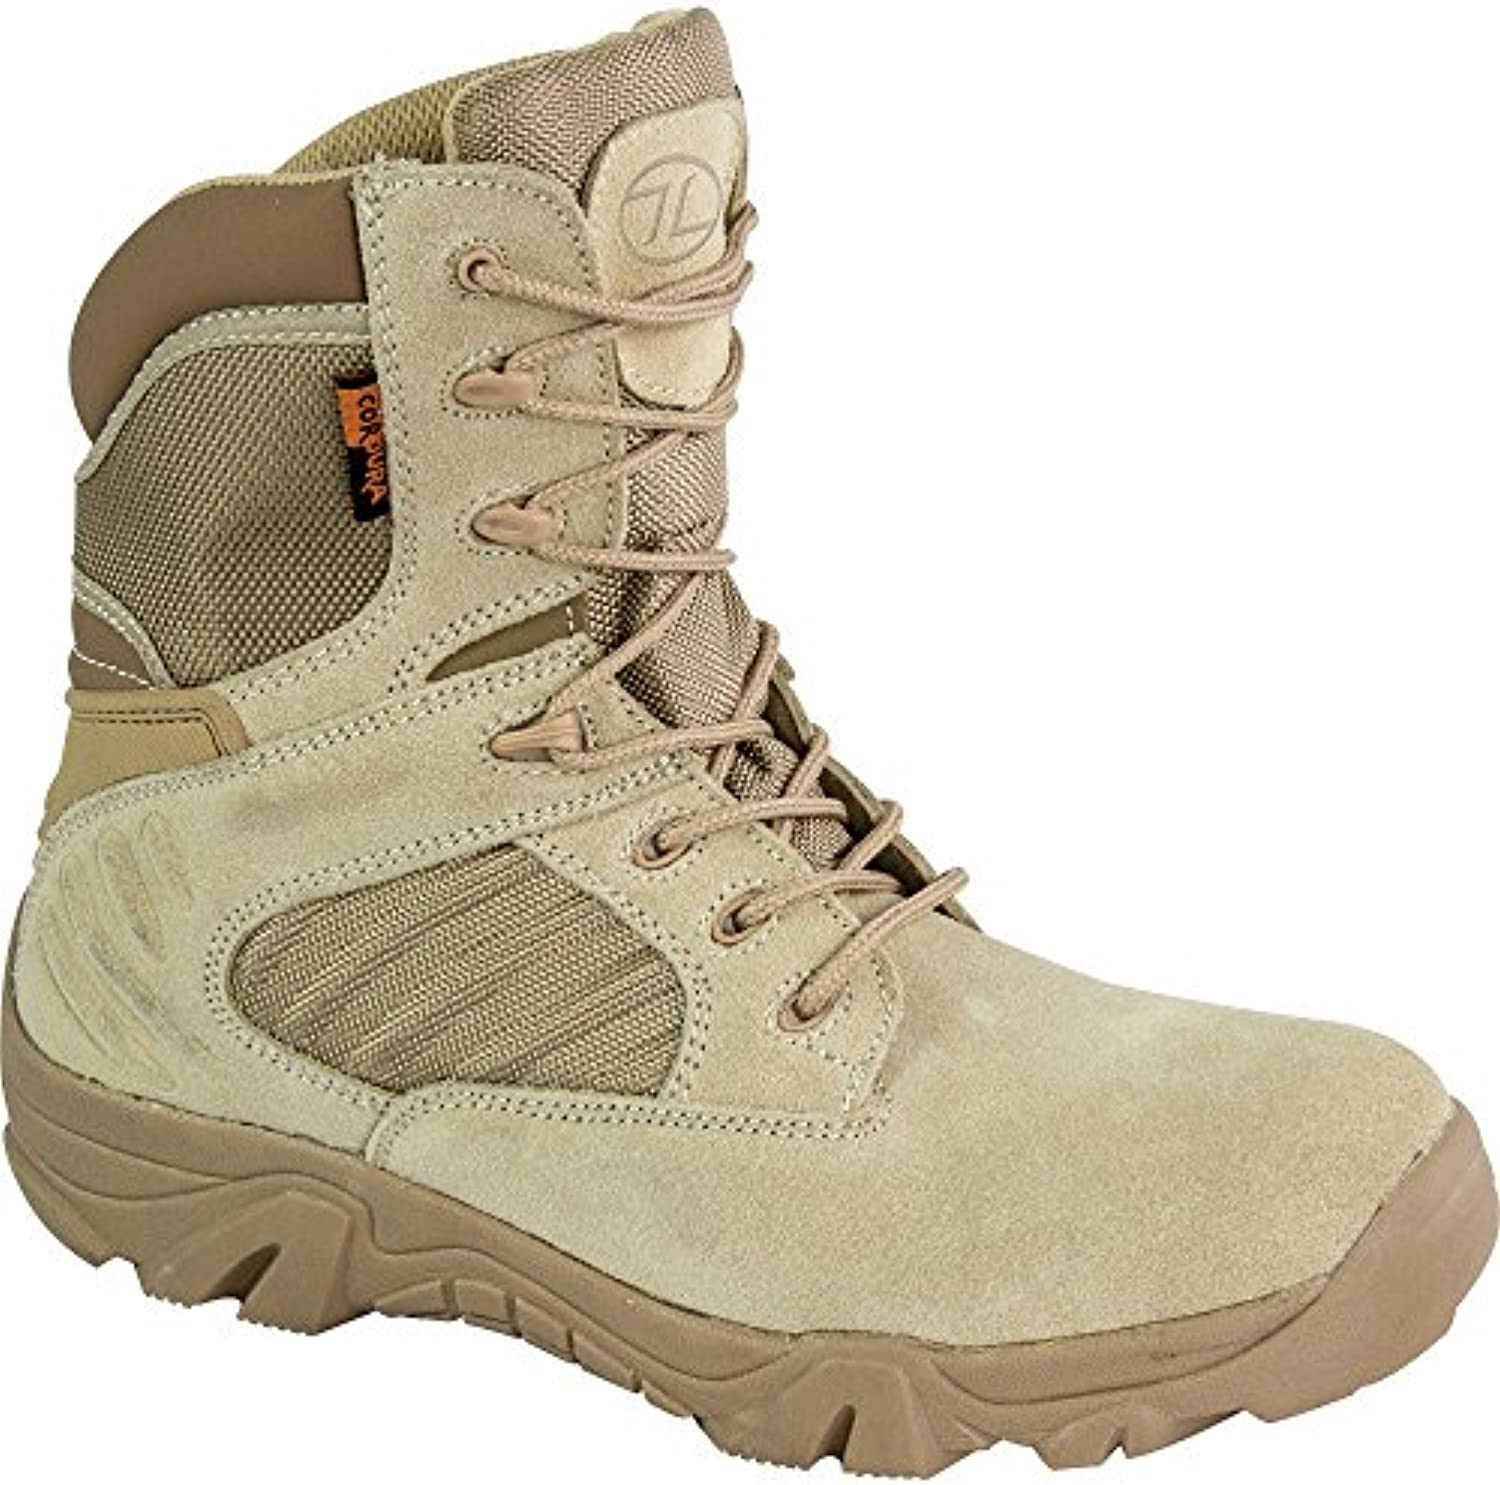 Highlander Mens Echo Cordura & Leather Reinforced Combat Boots